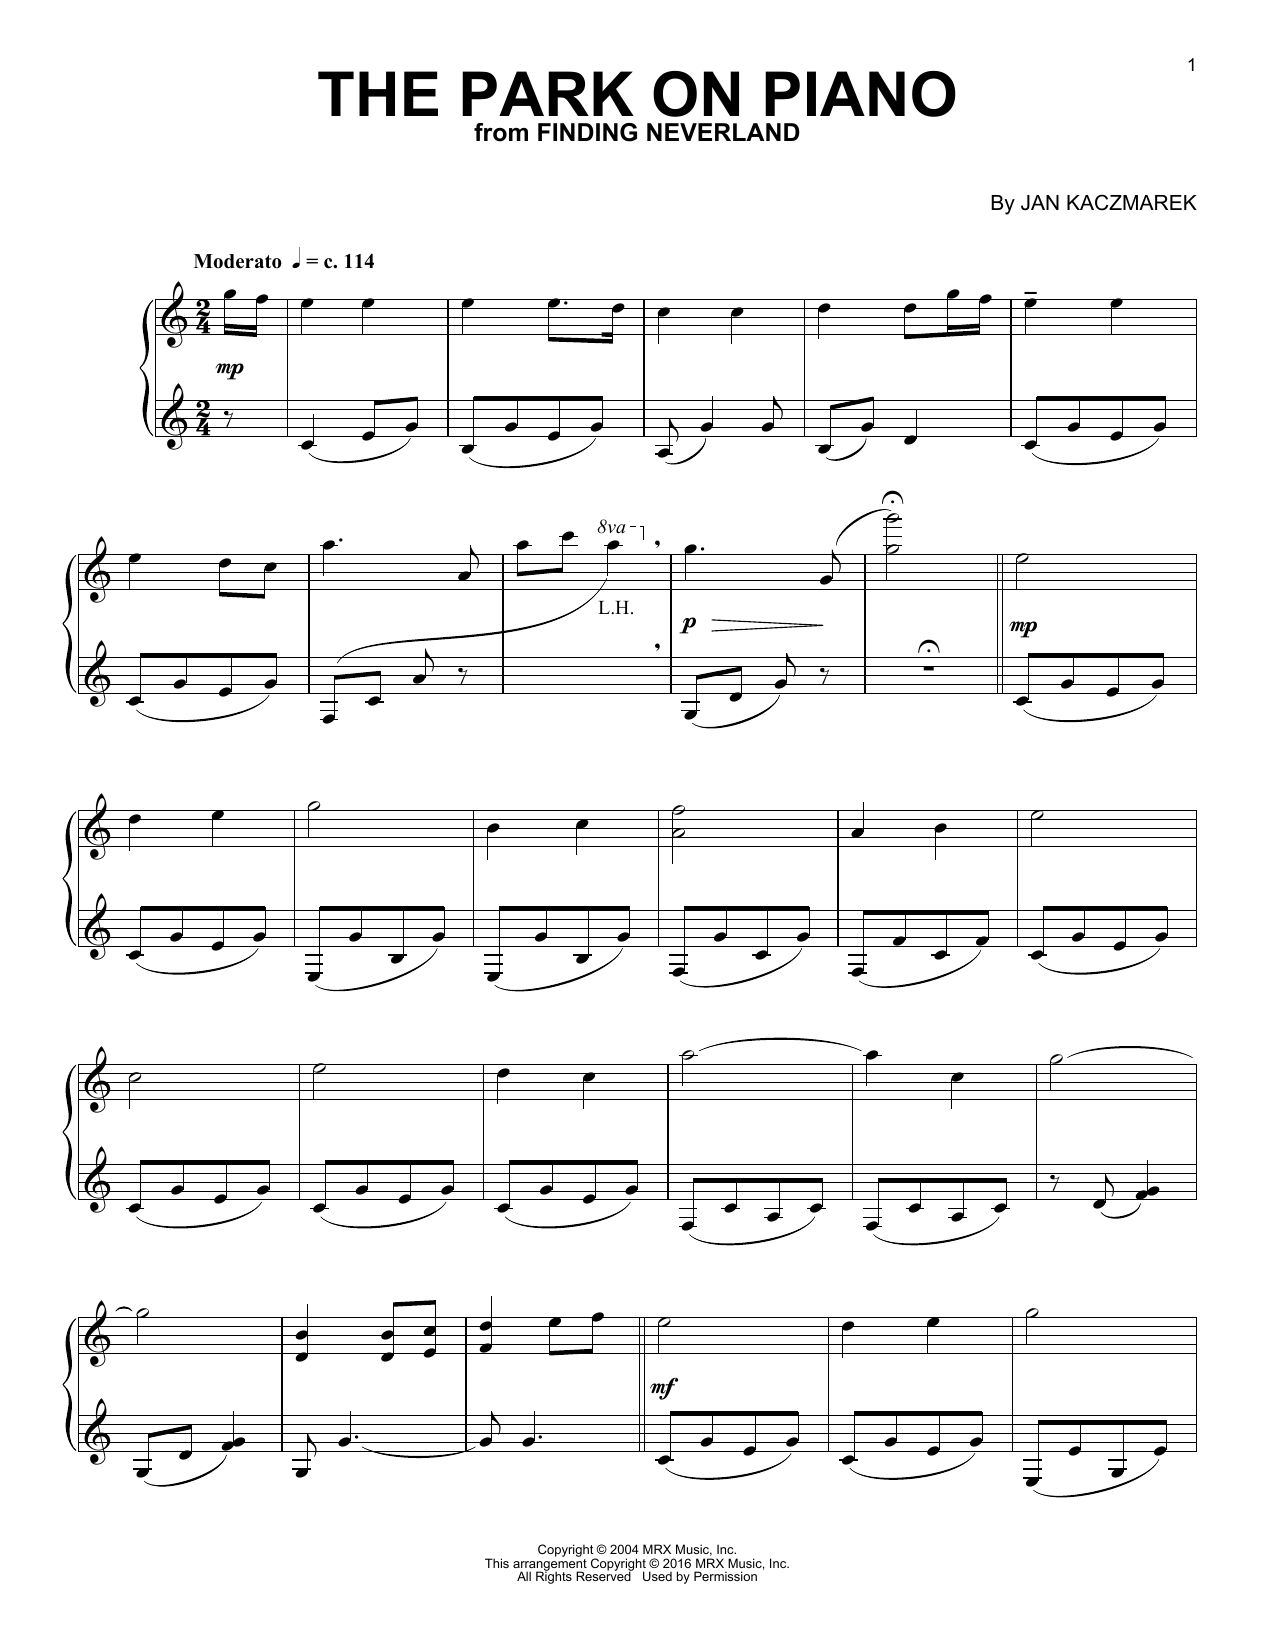 Jan A.P. Kaczmarek The Park On Piano (from Finding Neverland) sheet music notes and chords. Download Printable PDF.